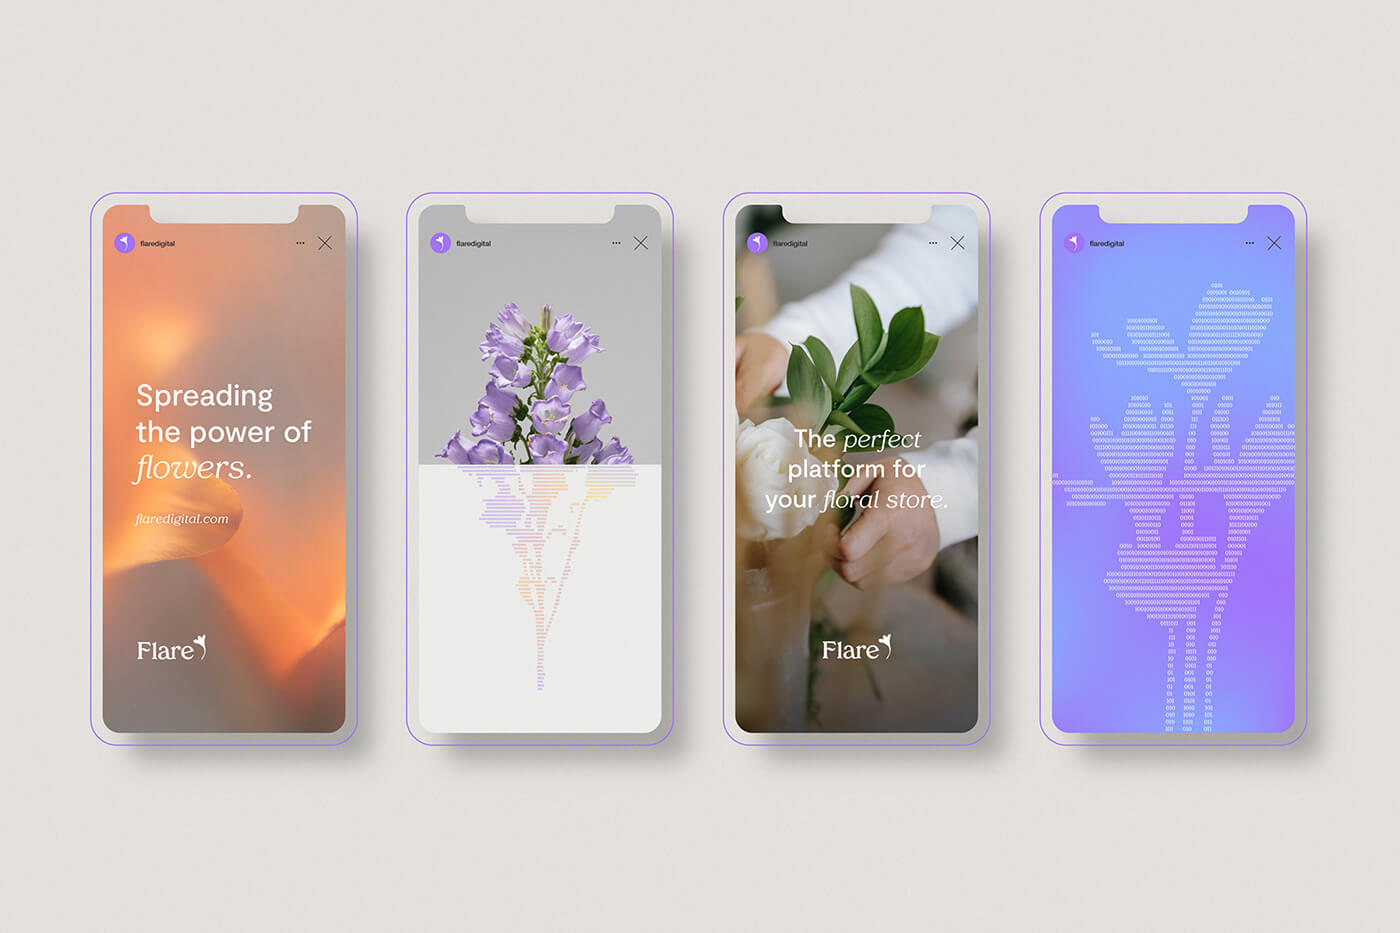 Flare is a florist system for independent flower shops across the USA